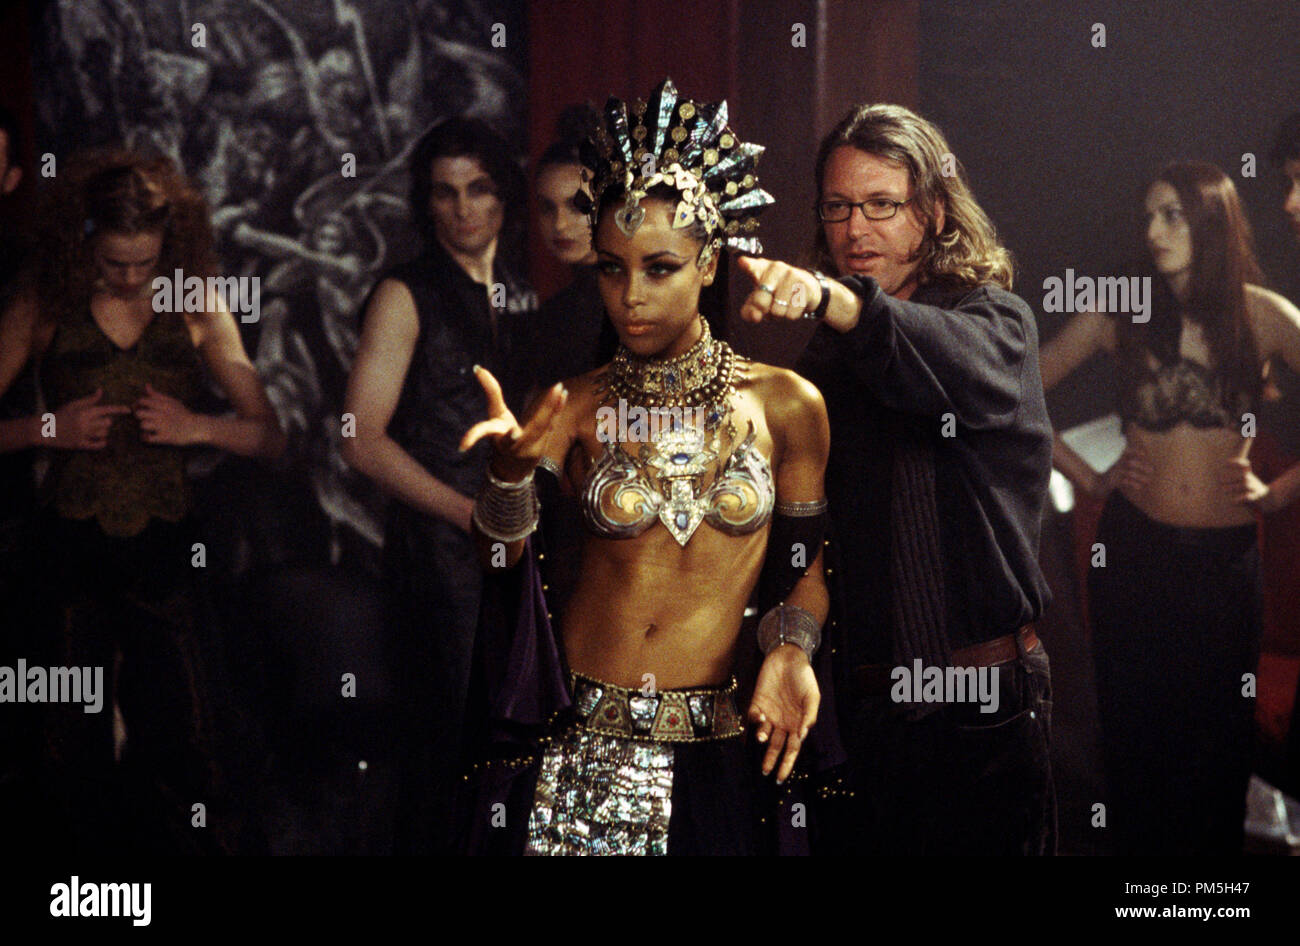 Studio Publicity Still from 'The Queen of the Damned' Aaliyah, Director Michael Rymer © 2002 Warner Brothers / Village Roadshow  File Reference # 307541267THA  For Editorial Use Only -  All Rights Reserved - Stock Image